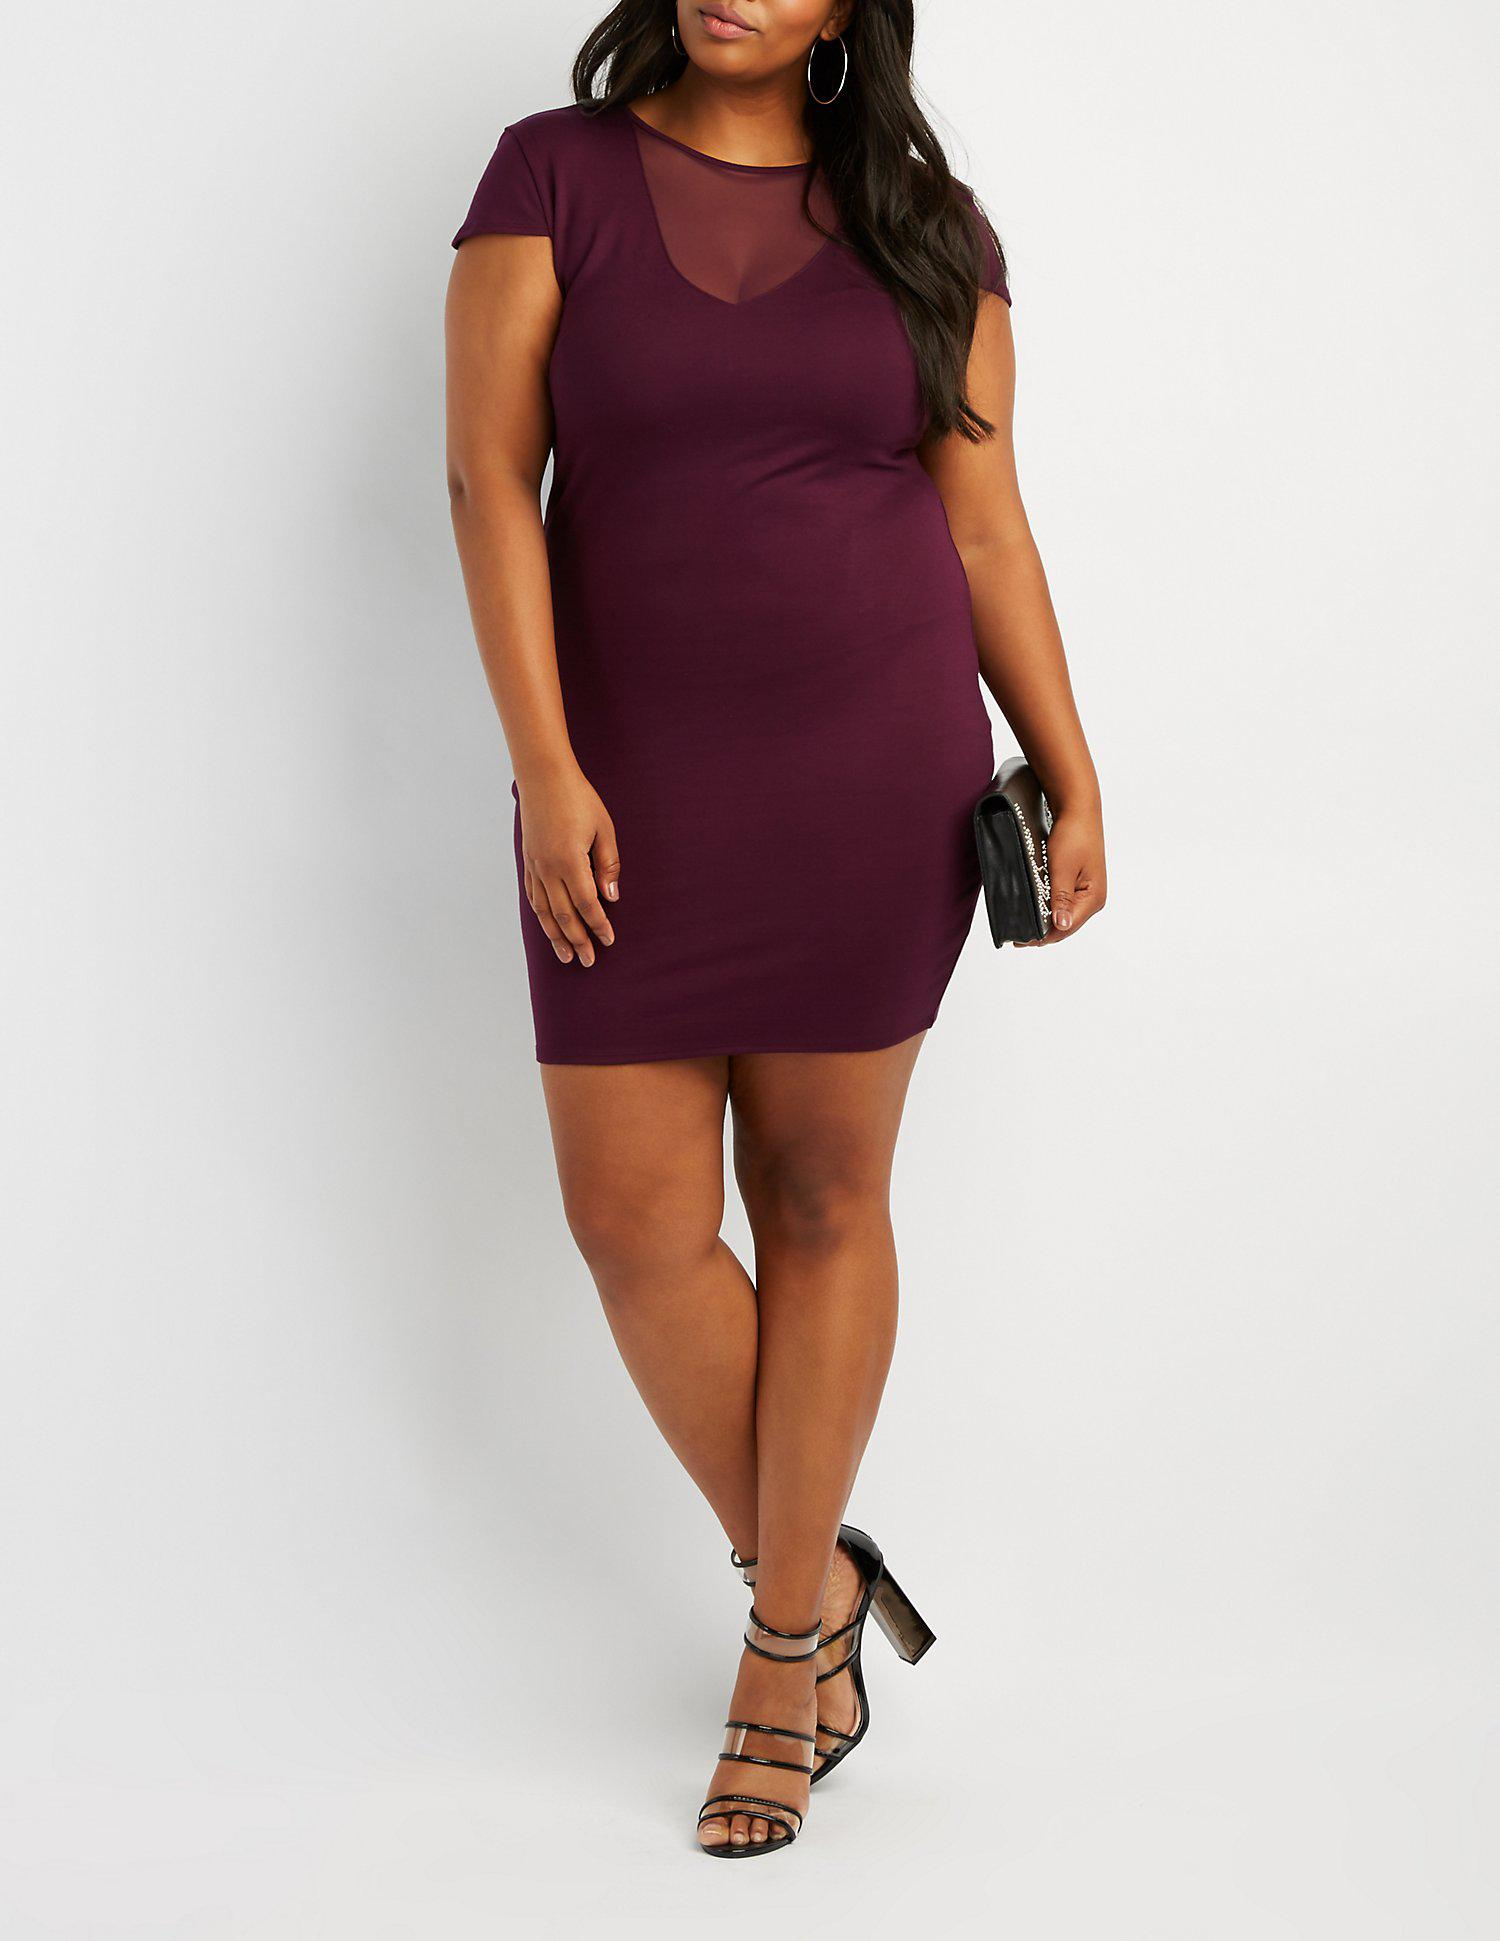 Lyst - Charlotte Russe Plus Size Mesh-inset Bodycon Dress in ...